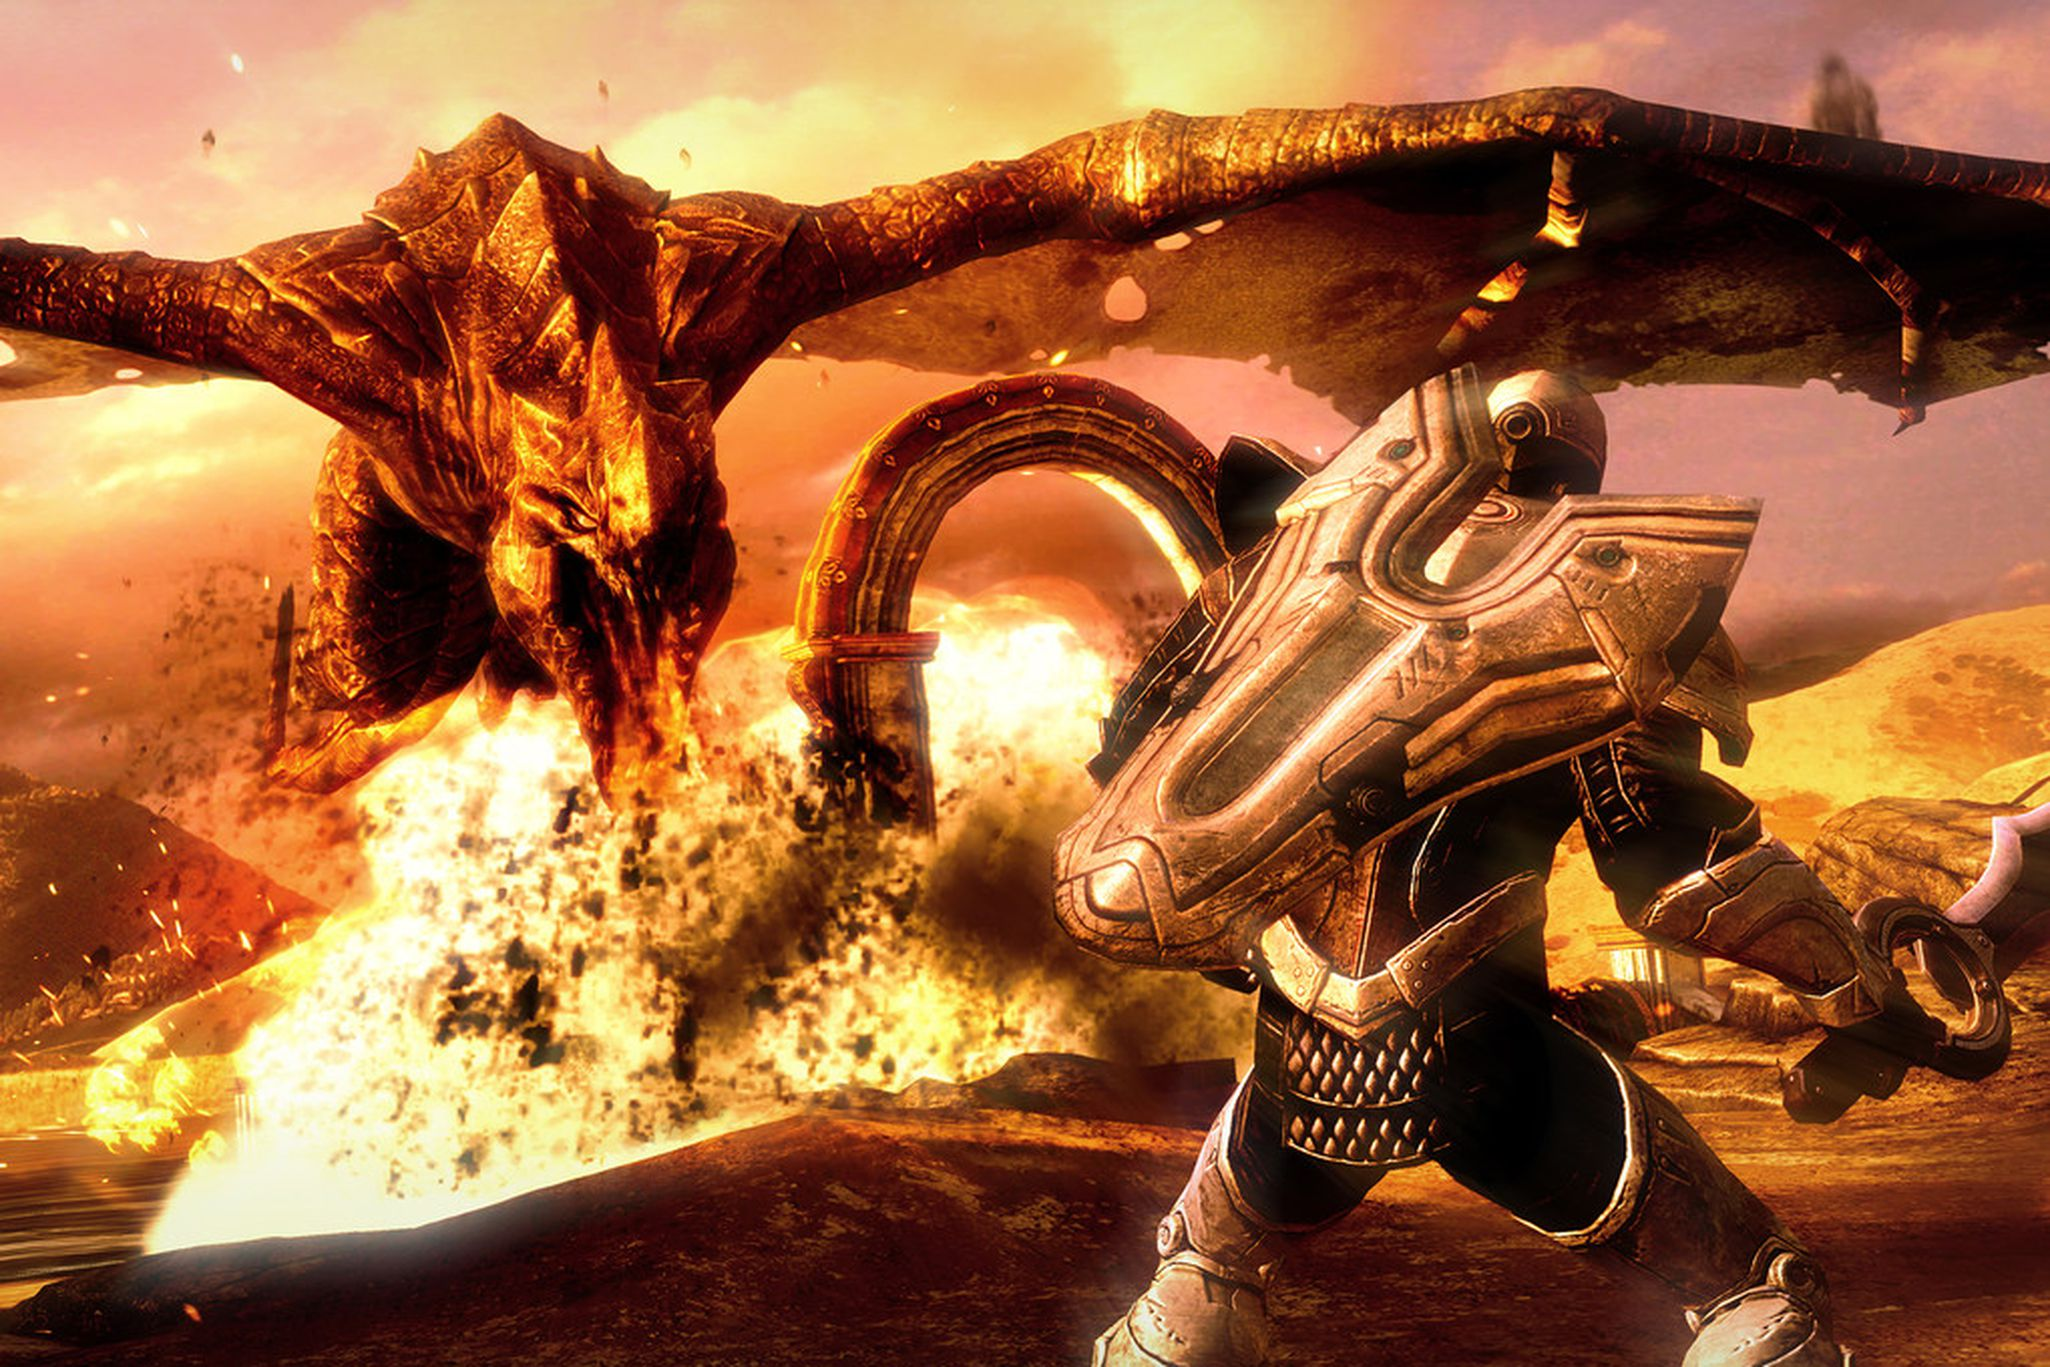 Infinity Blade III' review: once more unto the breach | The Verge